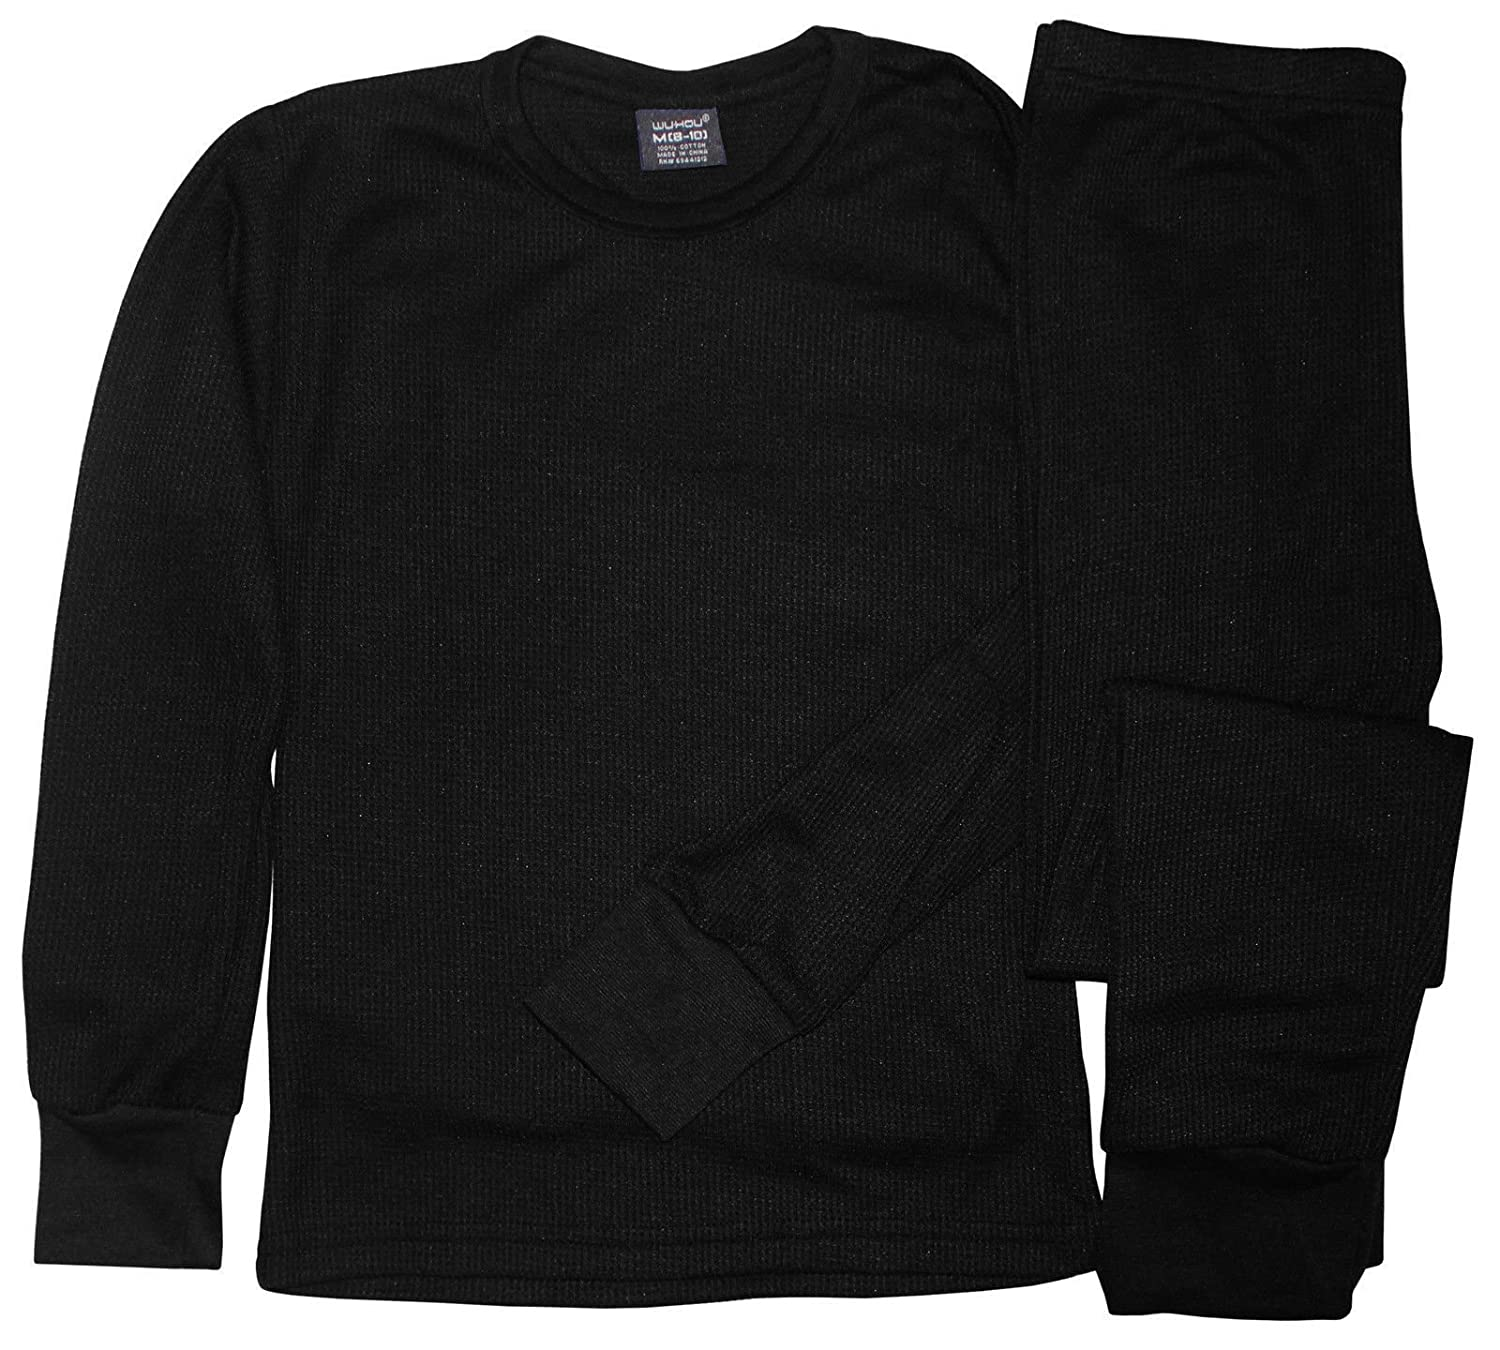 WH Boys Cotton Light Weight Thermal Top & Bottom Underwear Set Small (4-7) Black AP-2161-S-BK